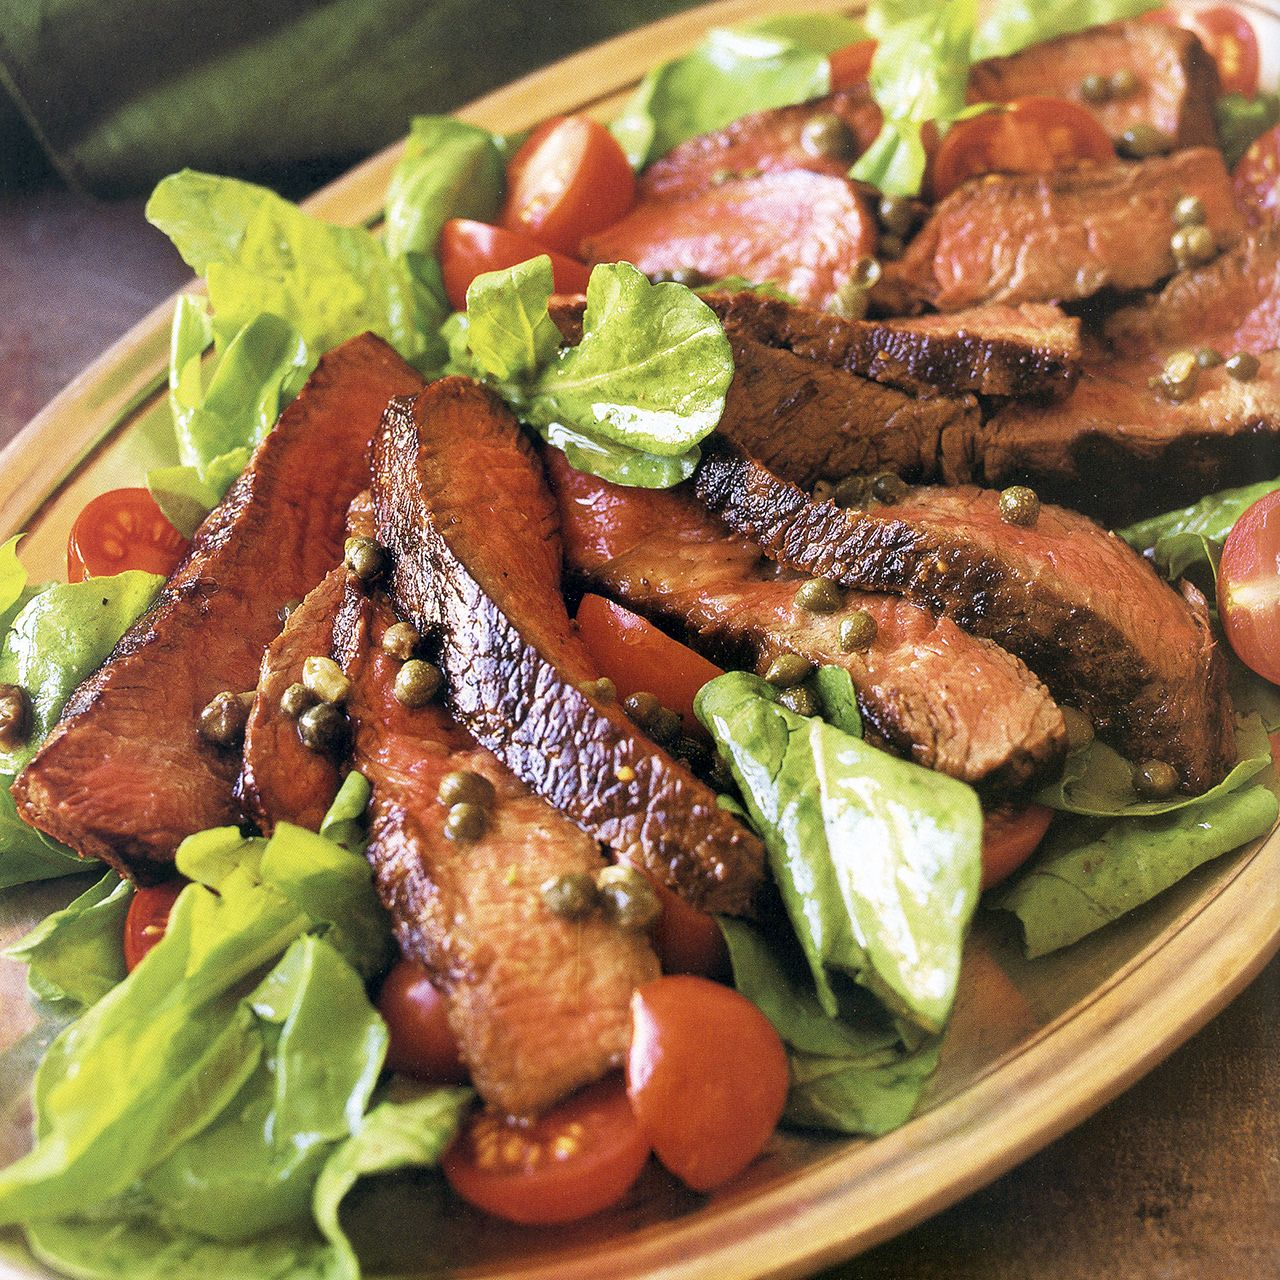 Grilled Steak and Arugula Salad with Mustard Caper Vinaigrette